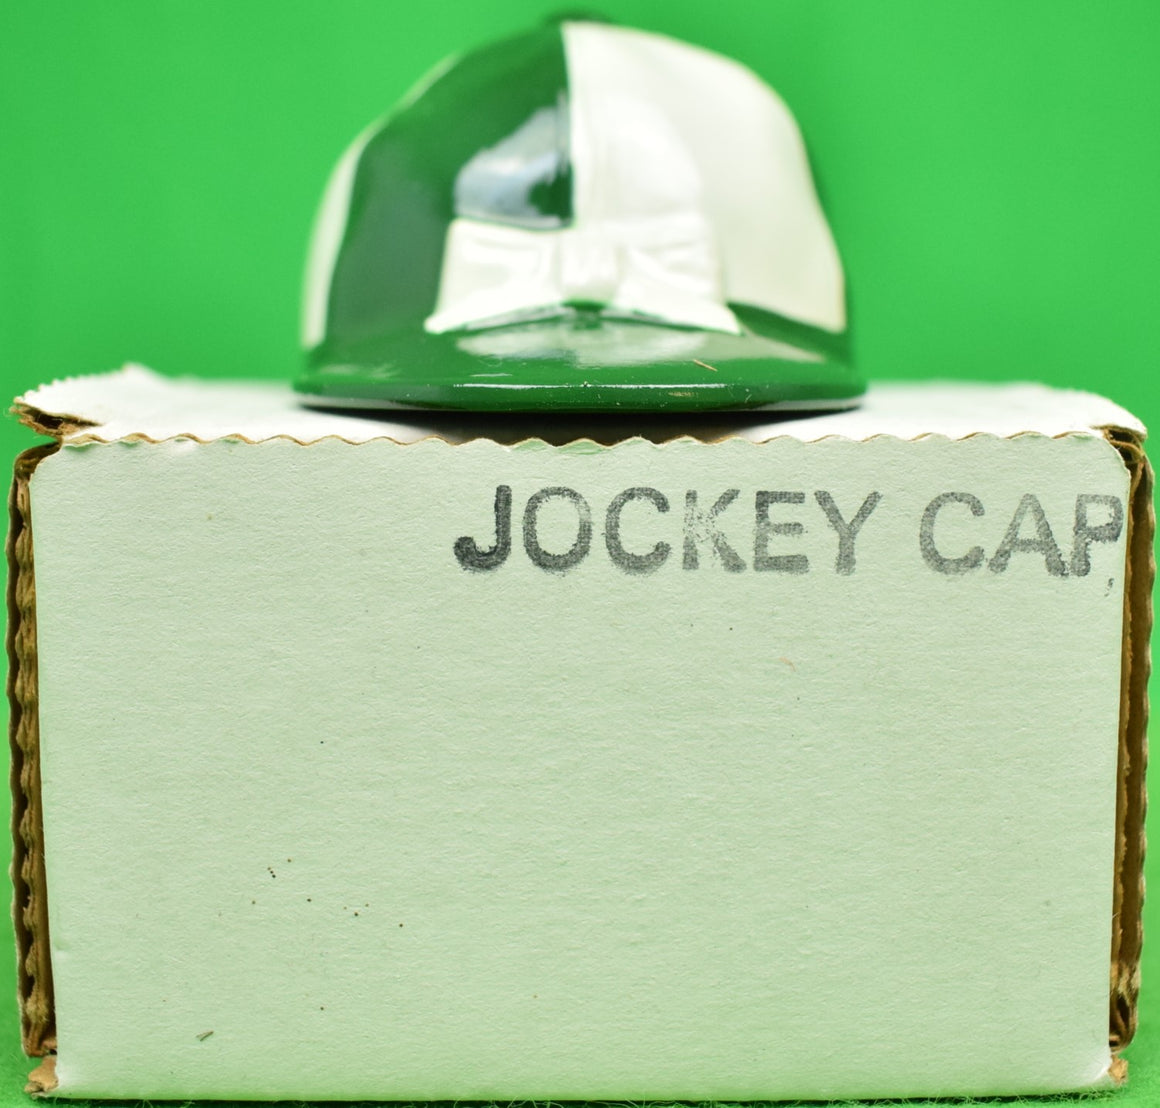 """21"" Club Green & White Jockey Cap Bottle Opener (New in Box!)"